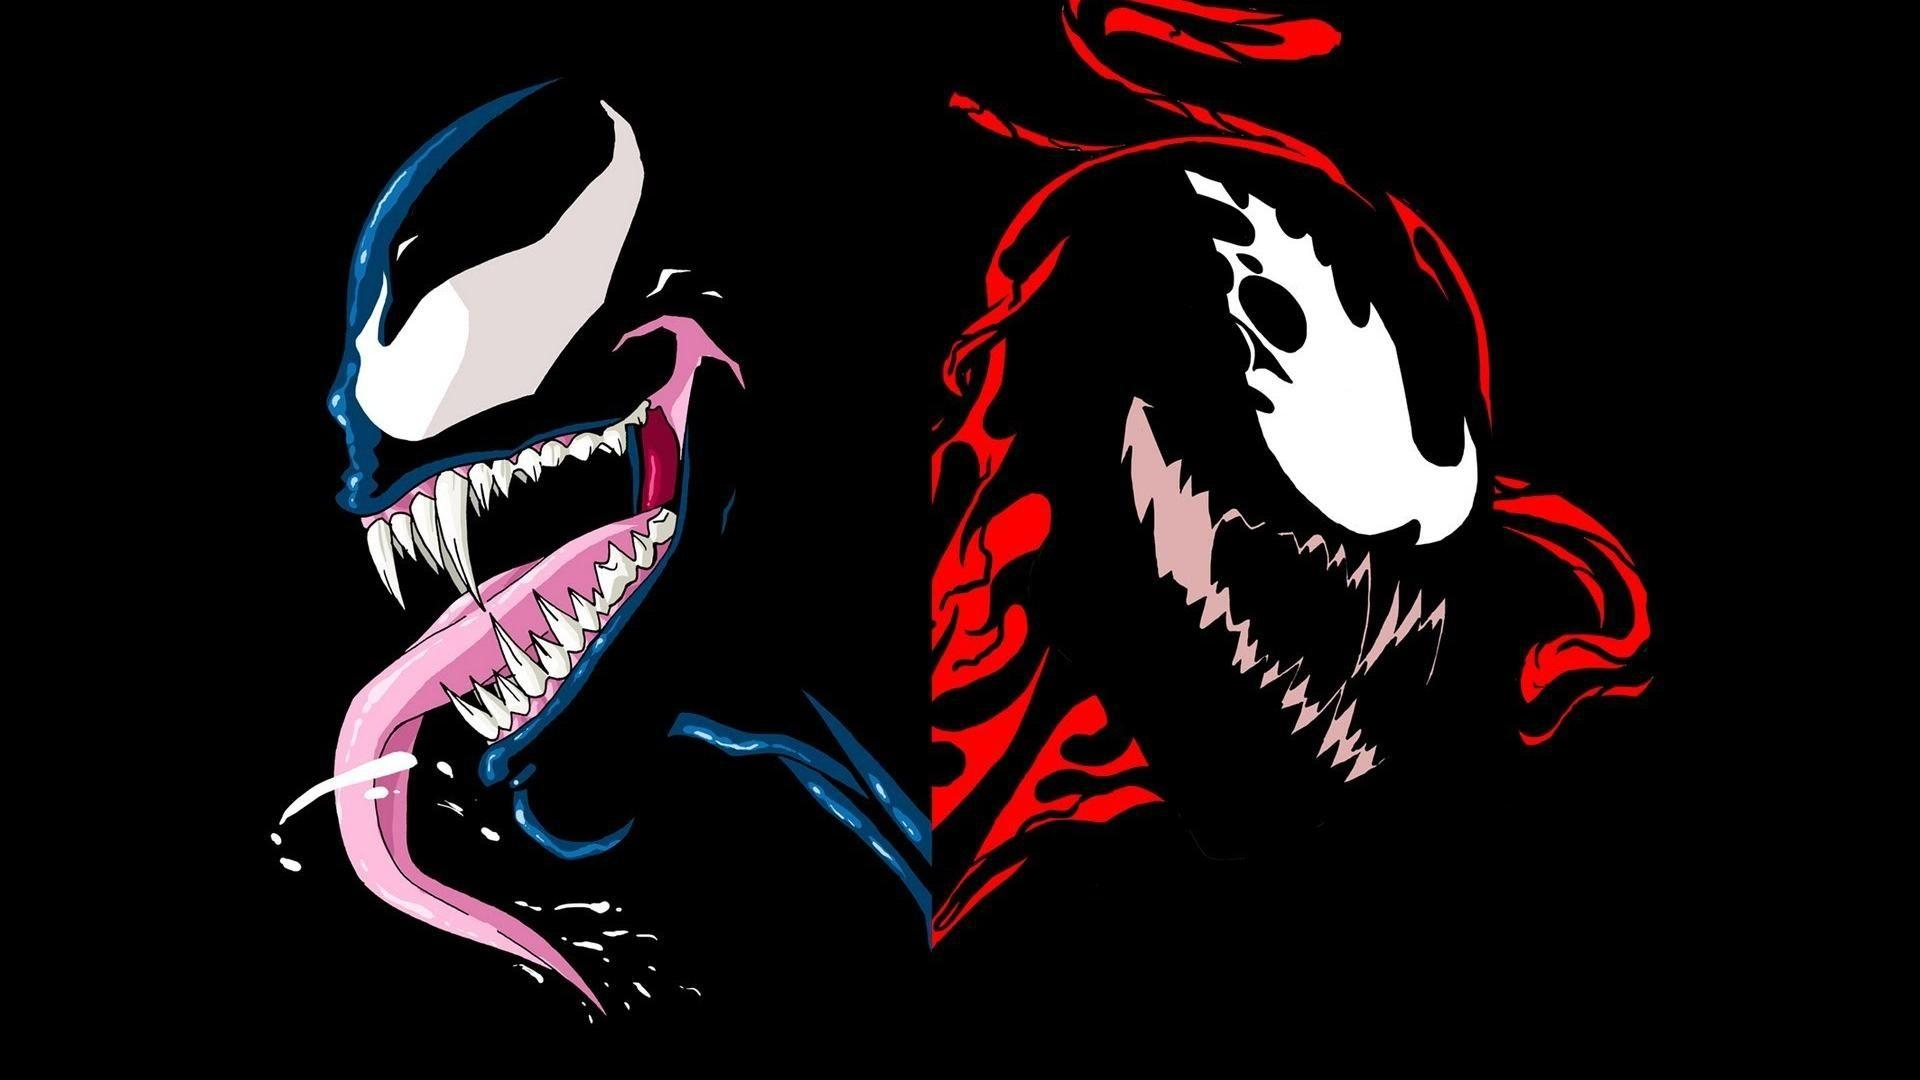 Carnage Spider Man Wallpapers Wallpaper Cave